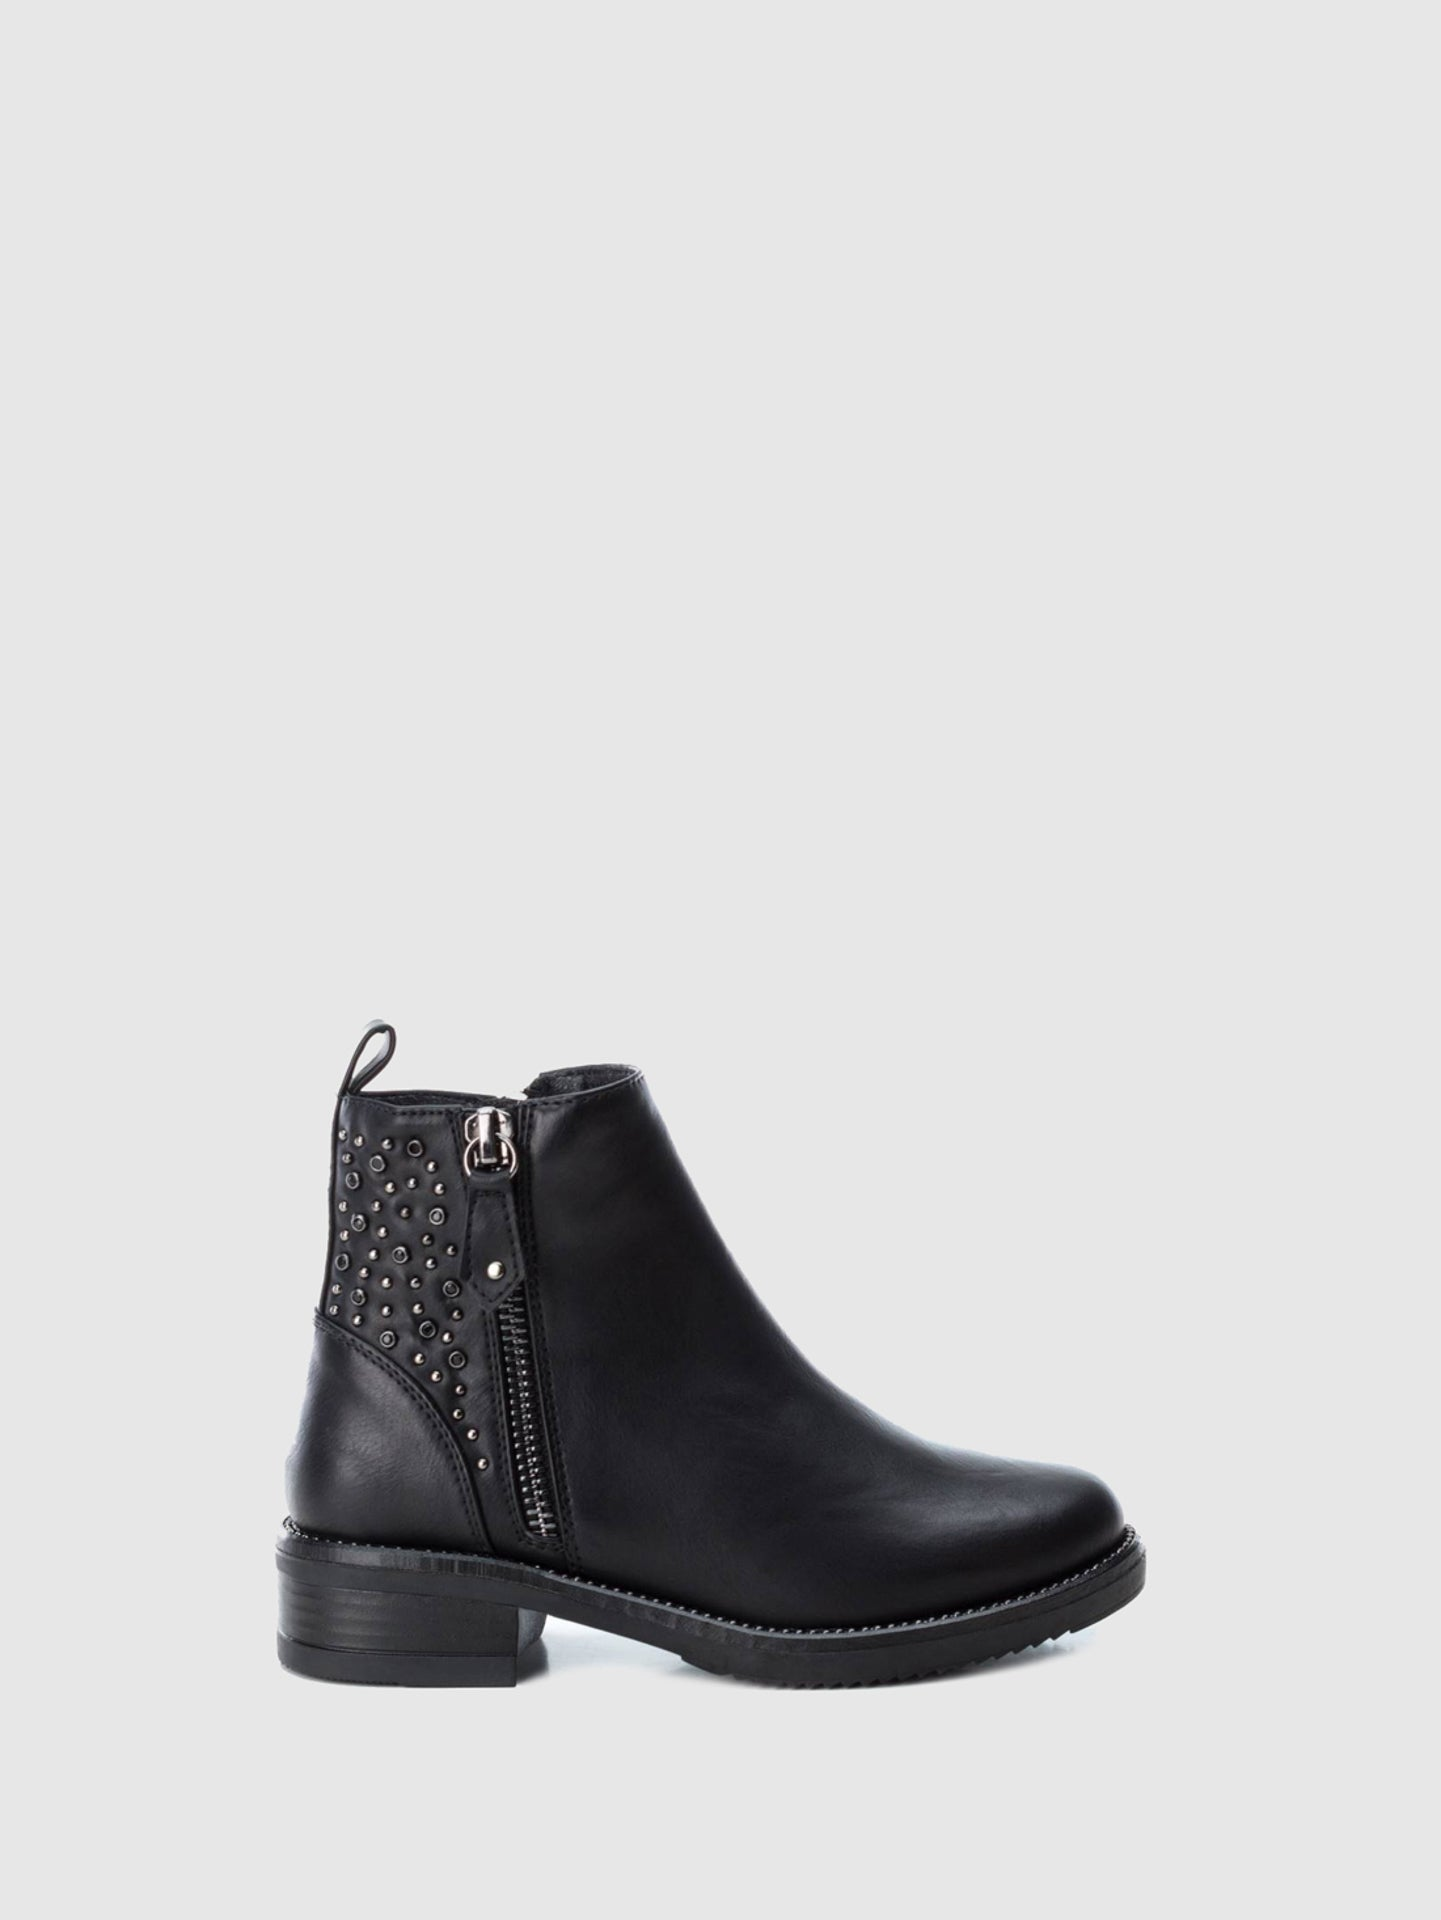 XTI Kids Black Zip Up Ankle Boots